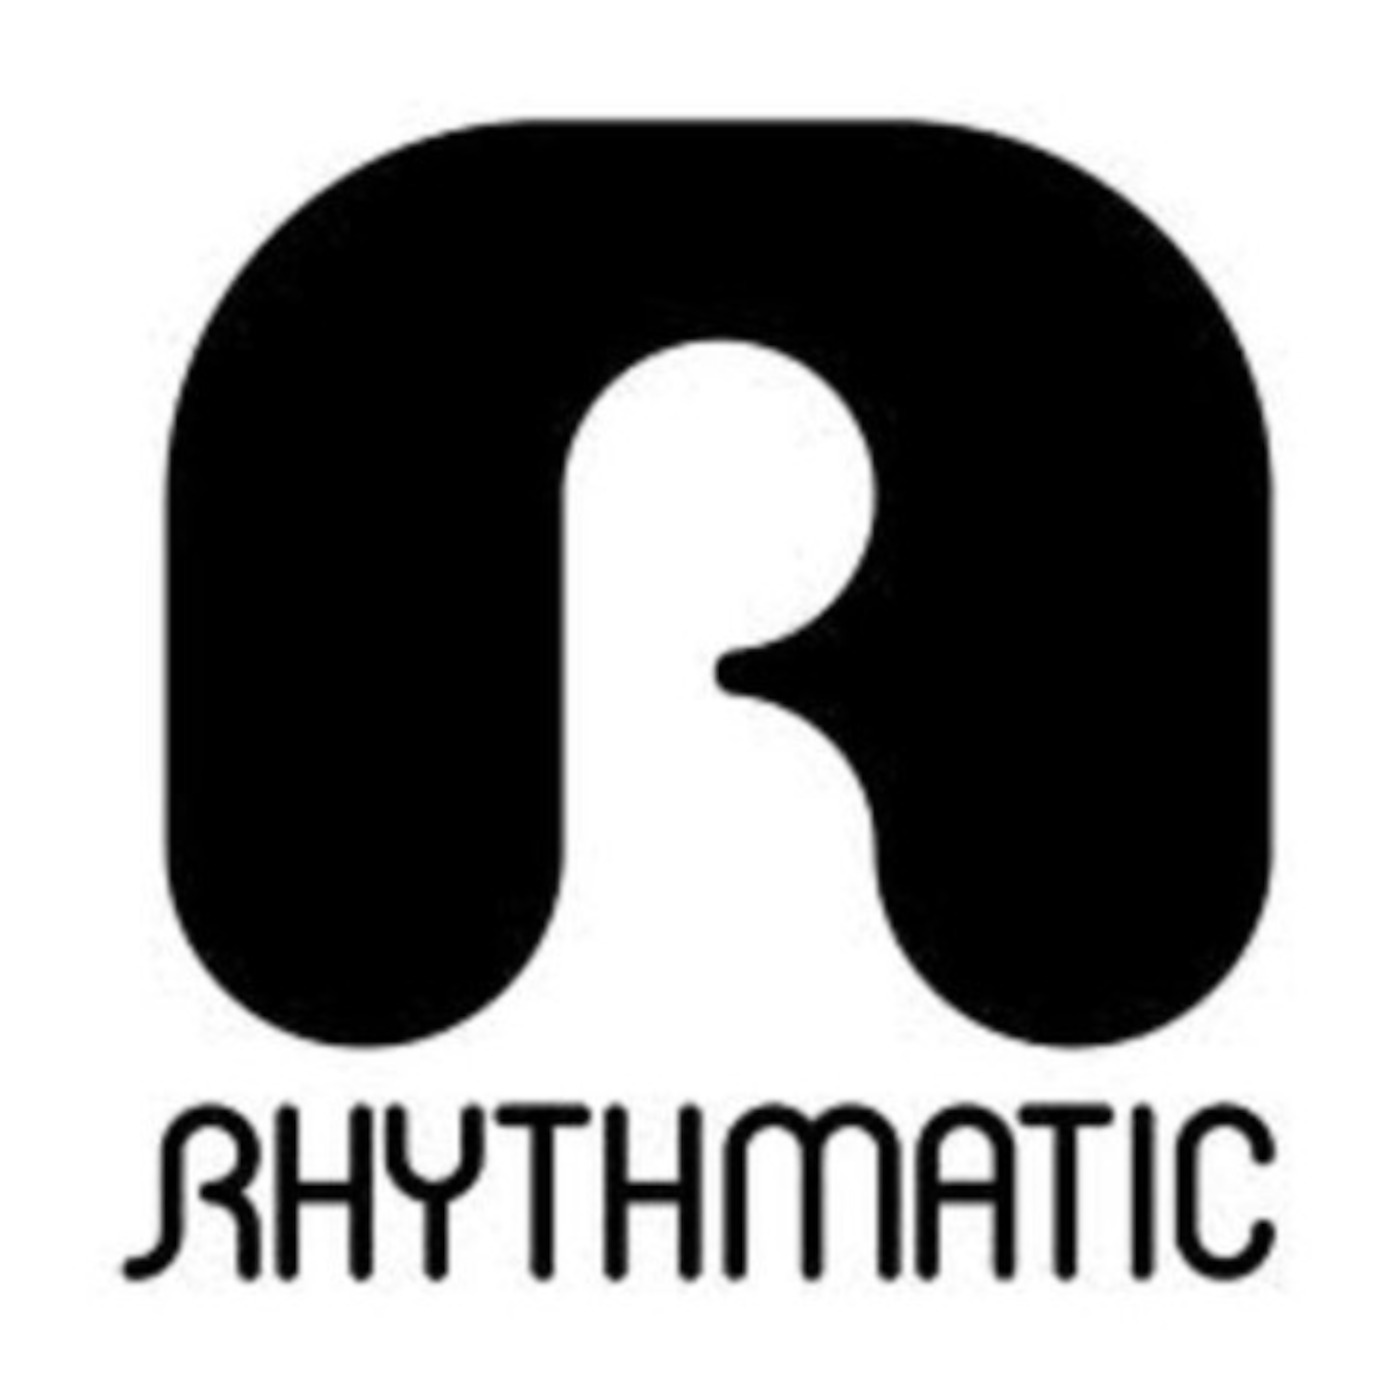 Rhythmatic Music's Podcast